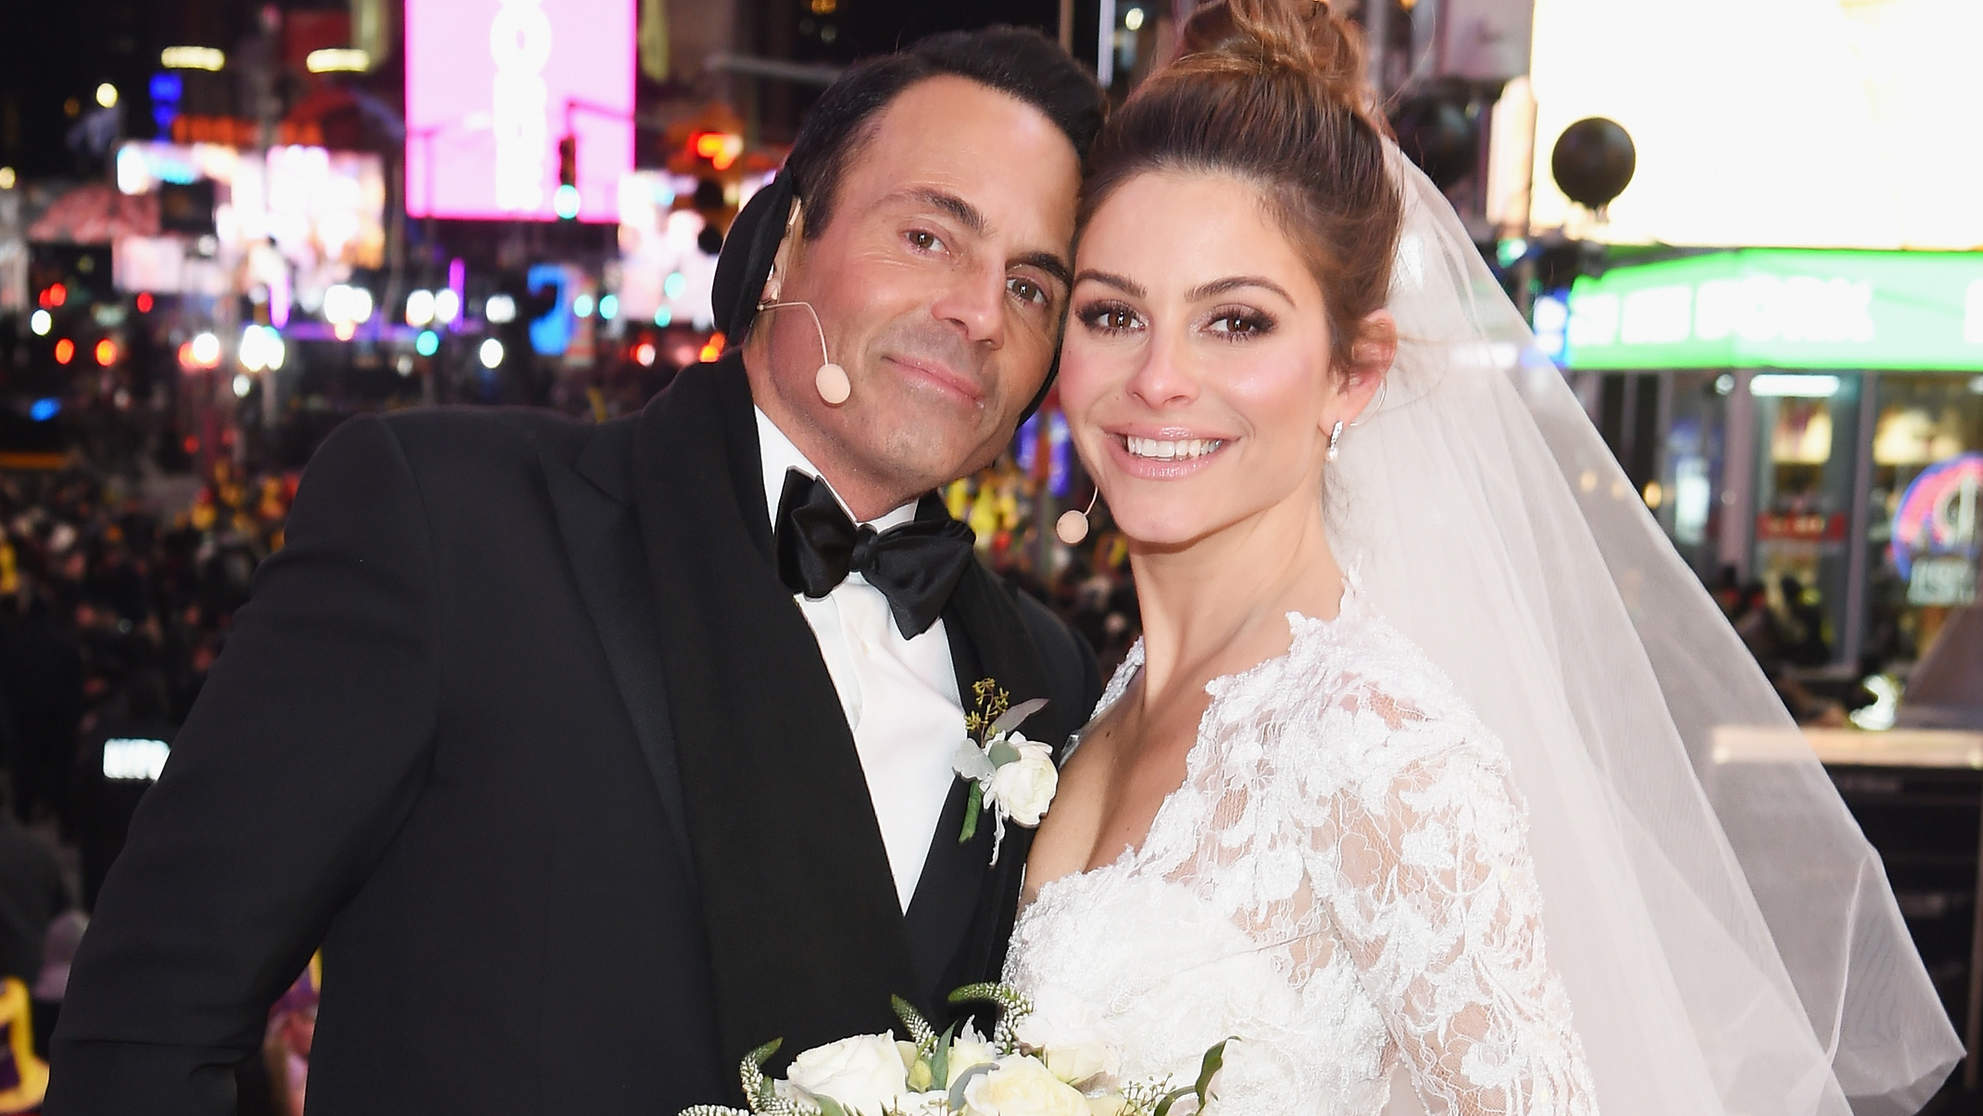 Newlywed Maria Menounos Is the Latest Star Considering Surrogacy